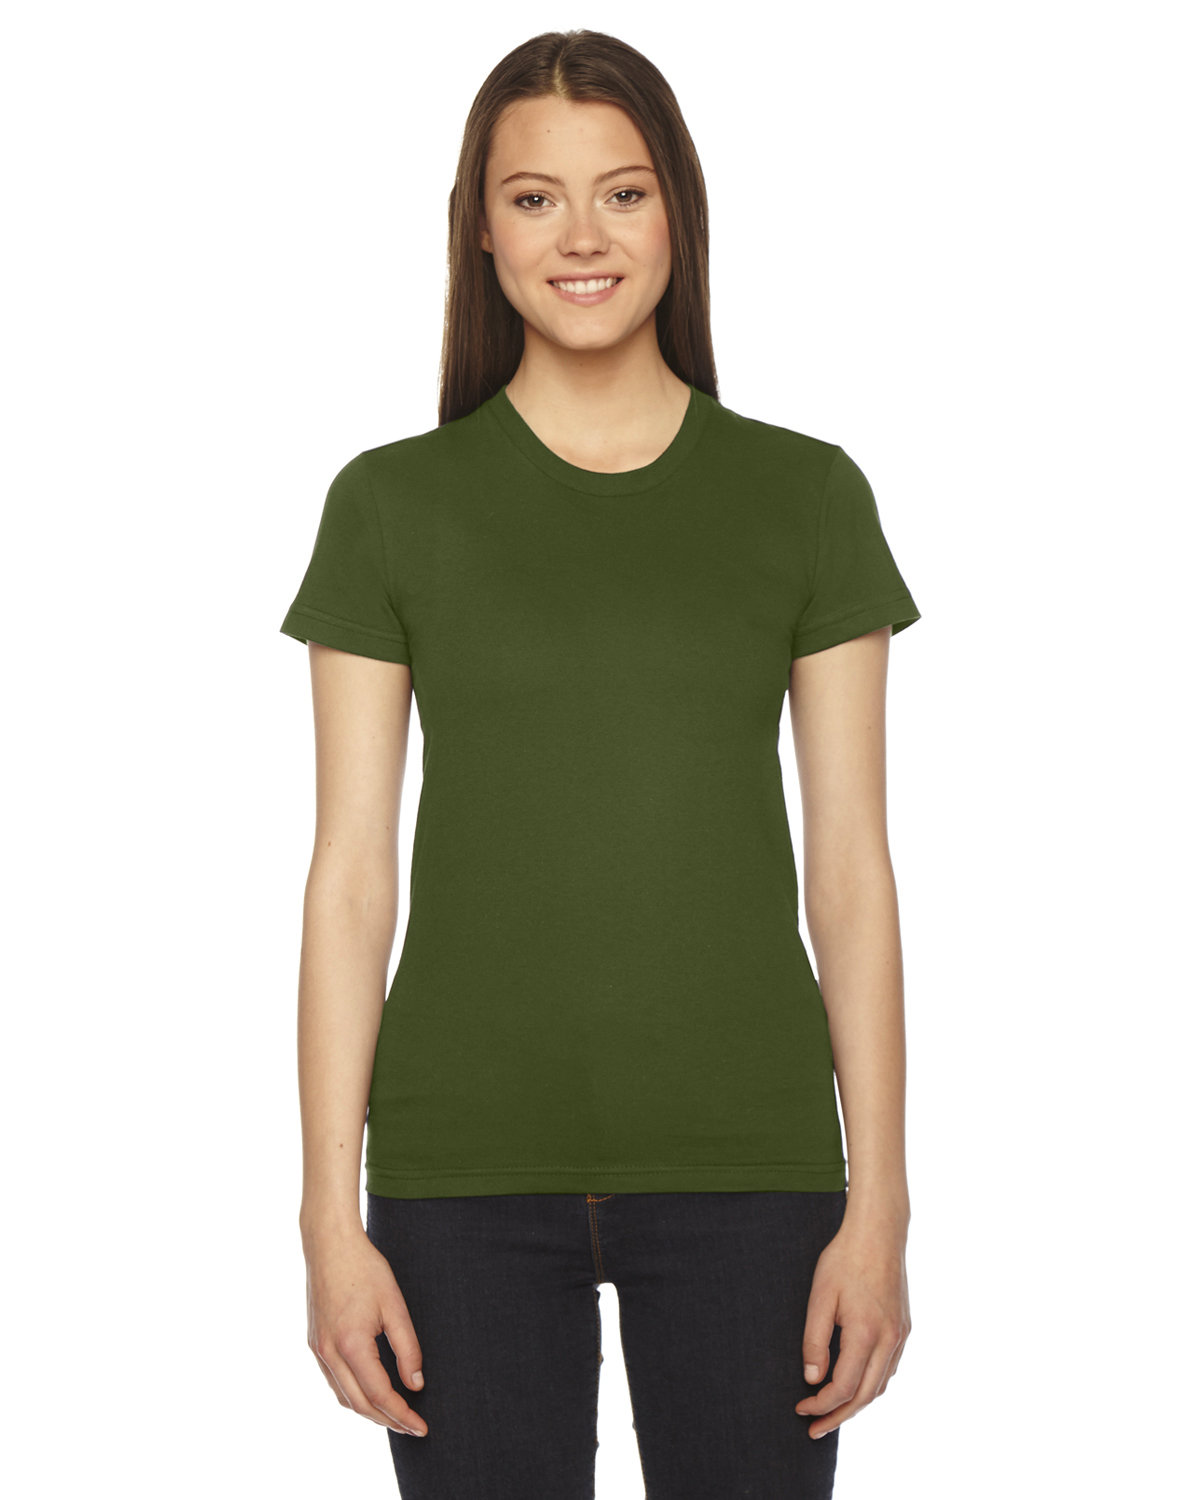 American Apparel Ladies' Fine Jersey Short-Sleeve T-Shirt OLIVE